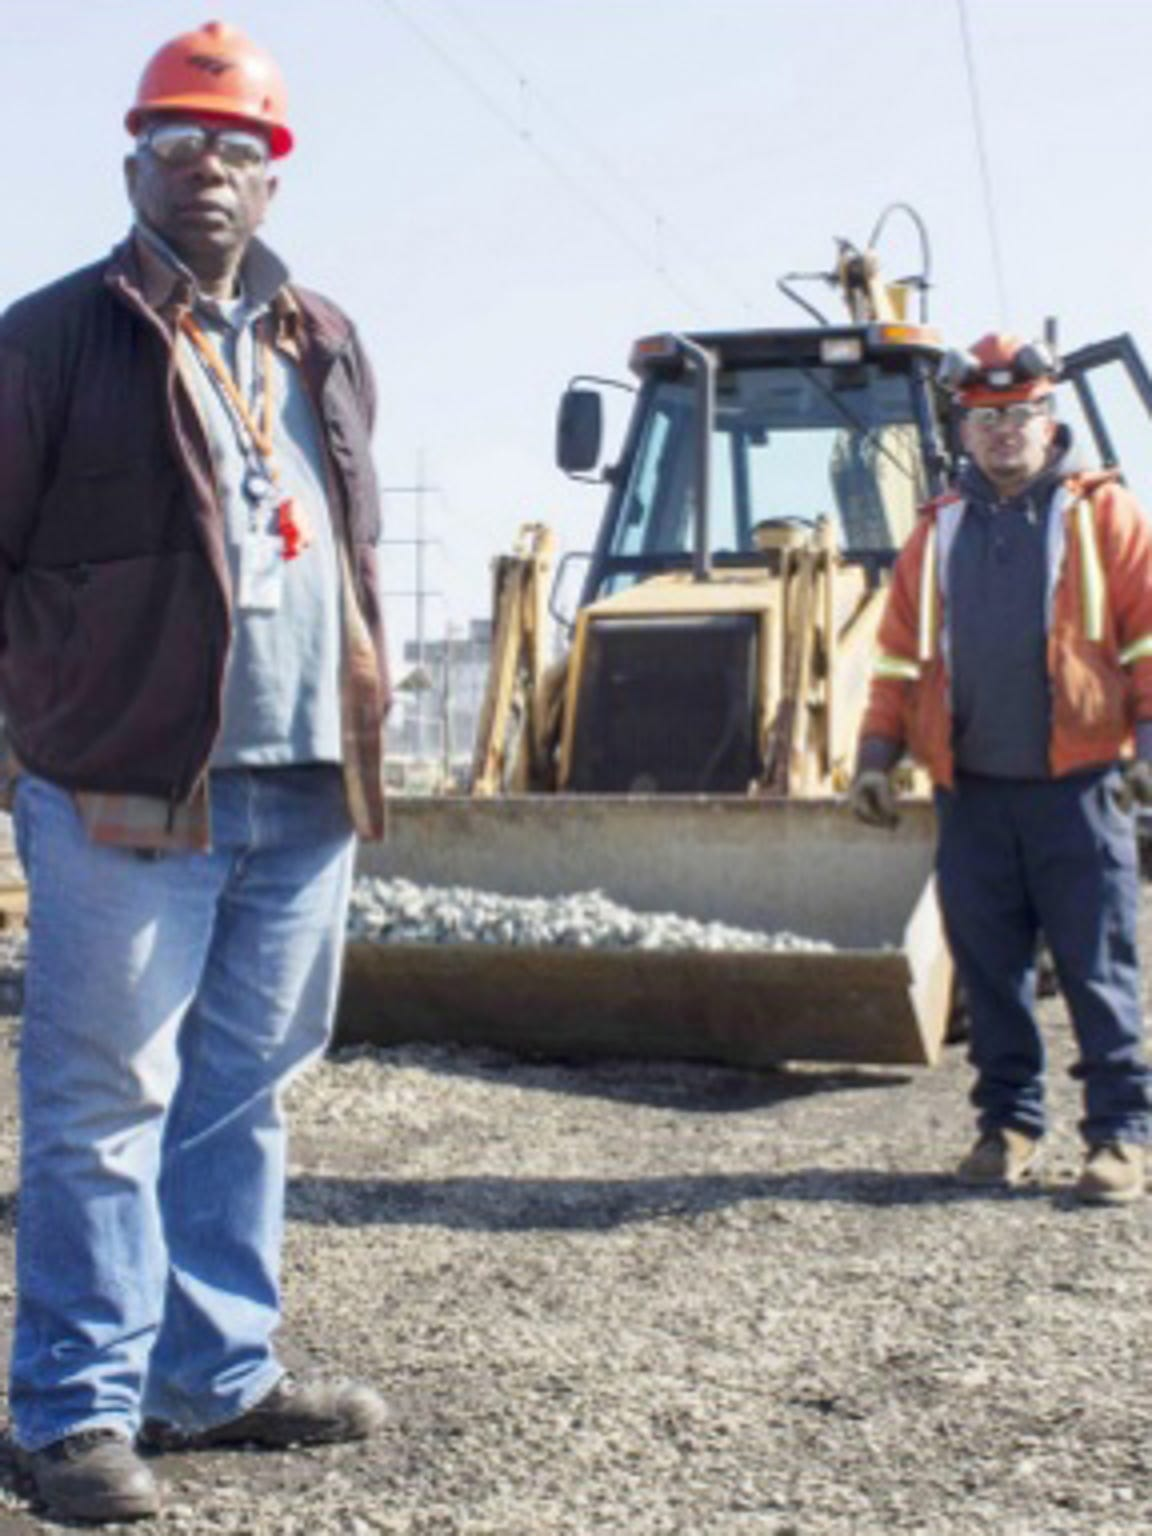 In this image from an April 2015 Amtrak newsletter, Amtrak workers Joe Carter (left) is shown with Victor Mercado. Carter died in Amtrak's crash in Chester, Pennsylvania, on Sunday, friends said Monday.